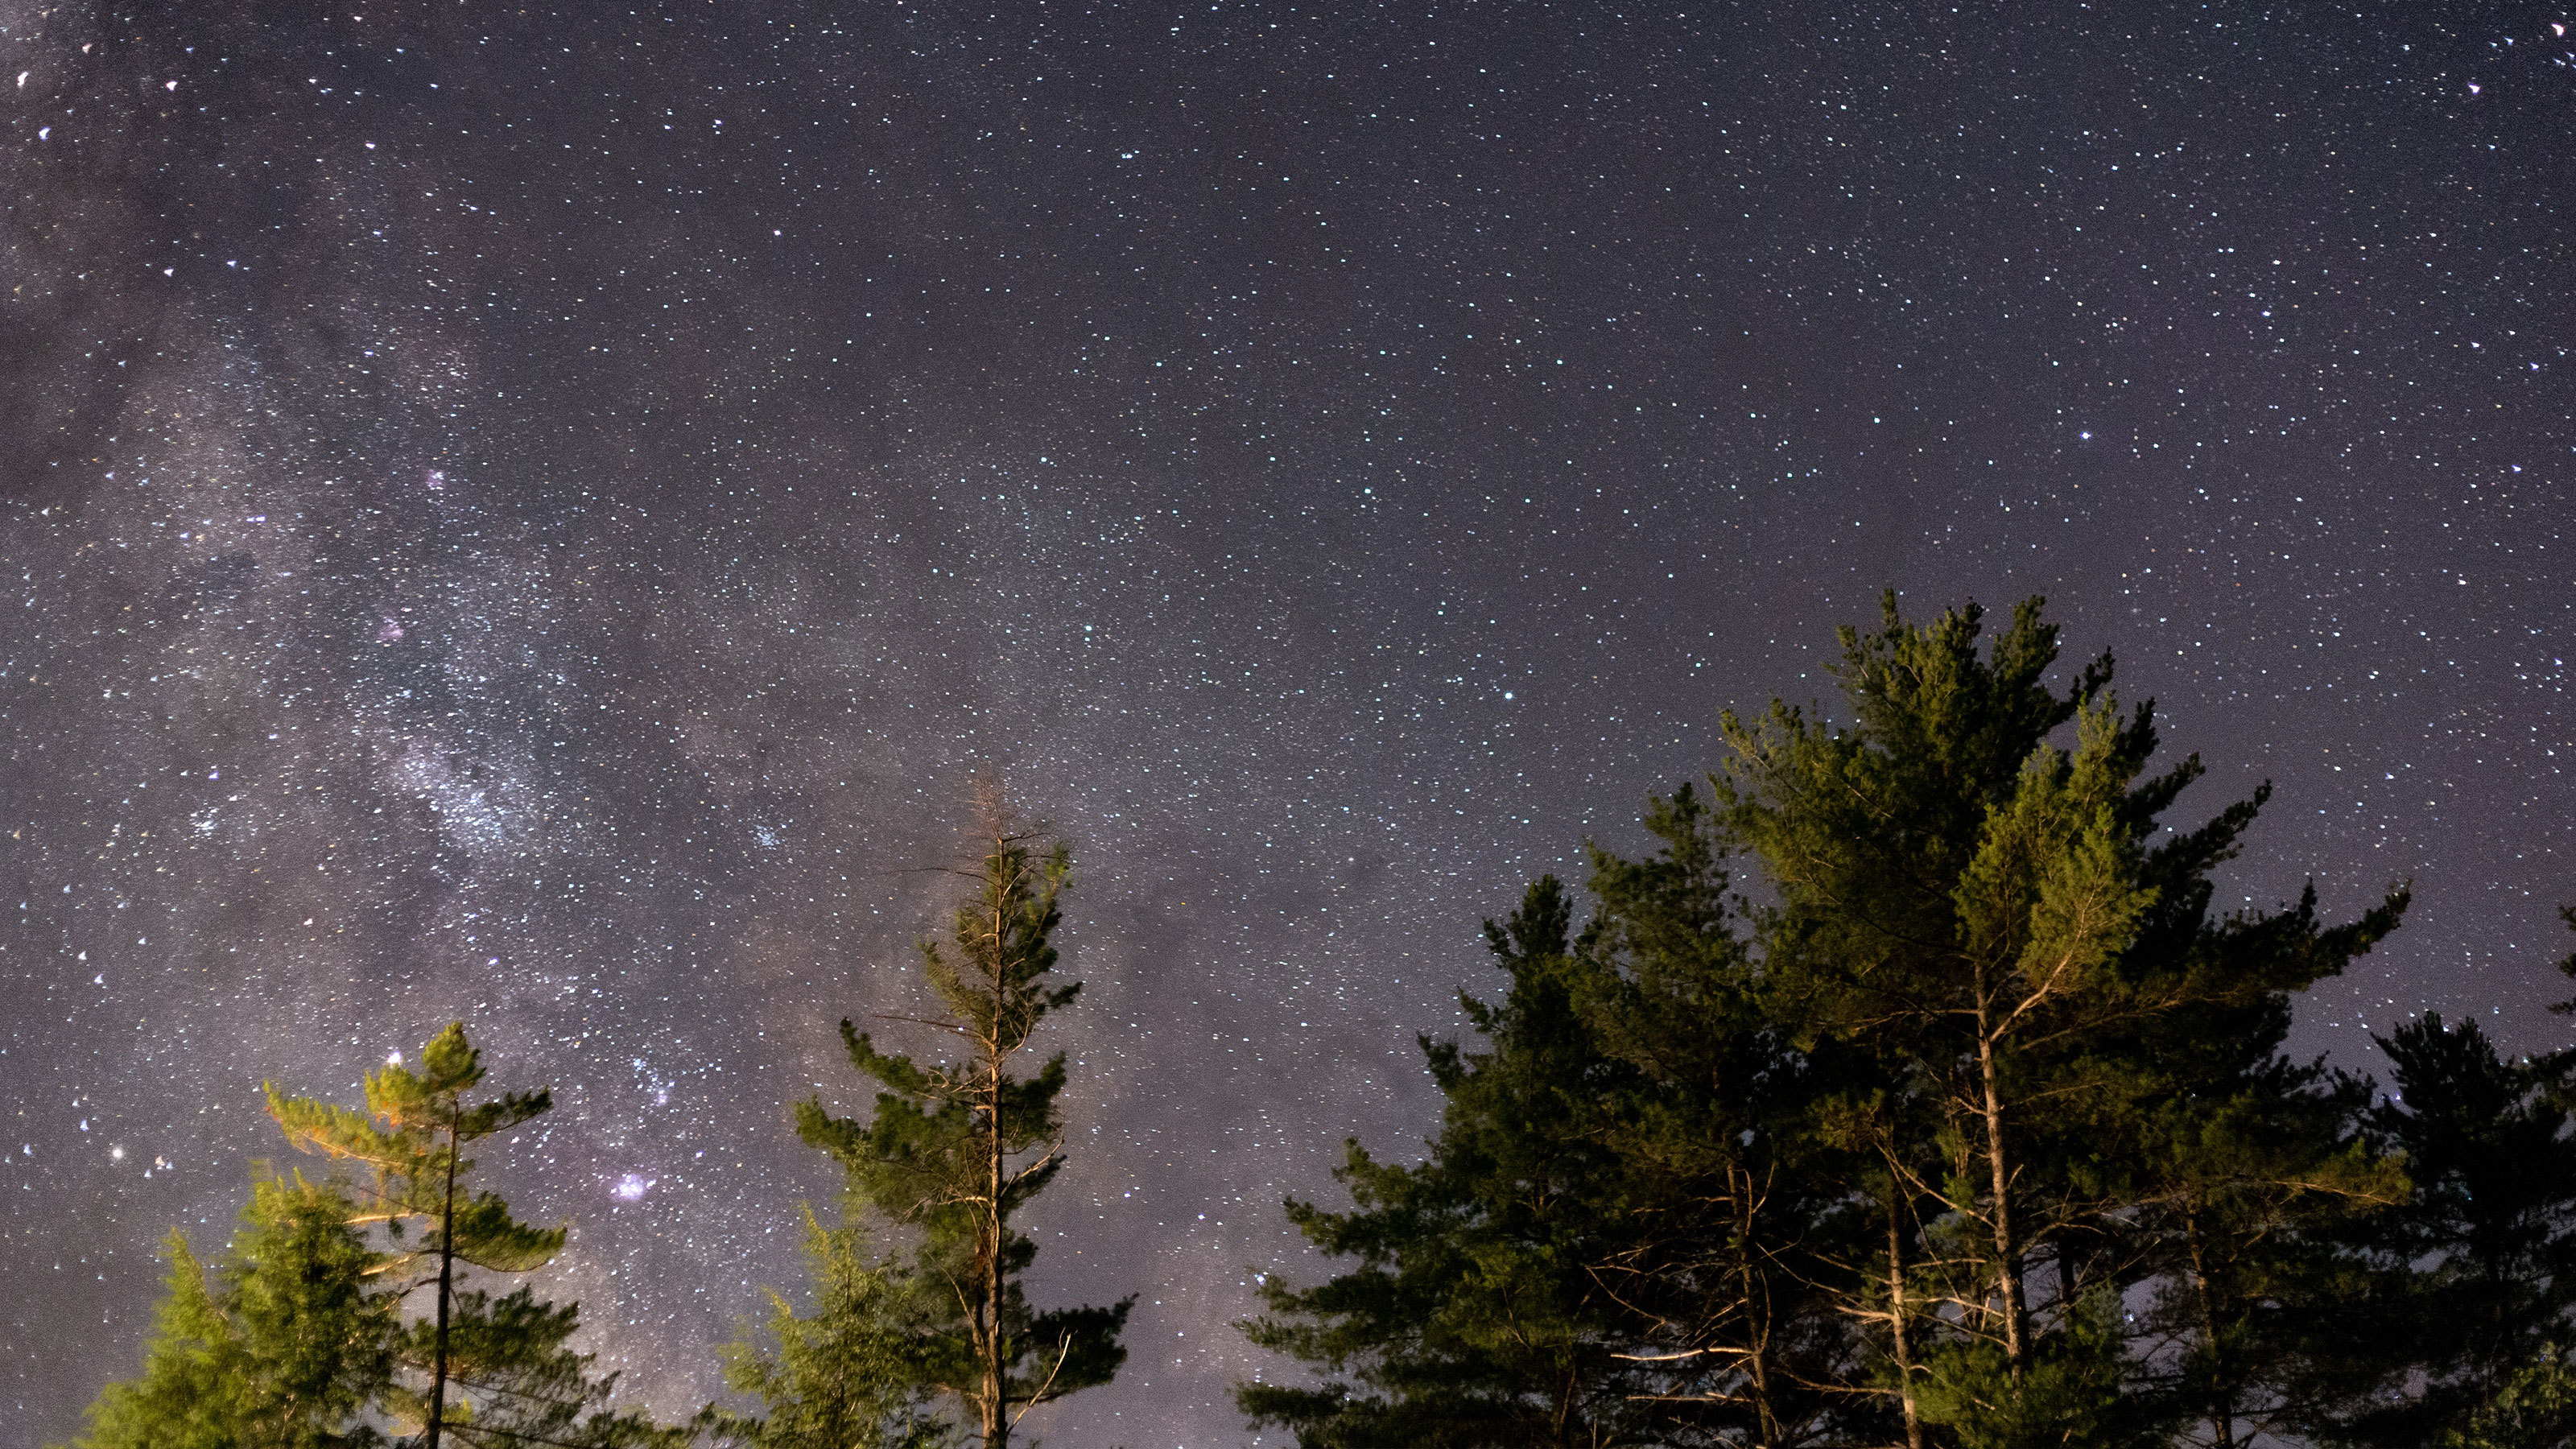 The-milky-way-at-night-over-pine-trees